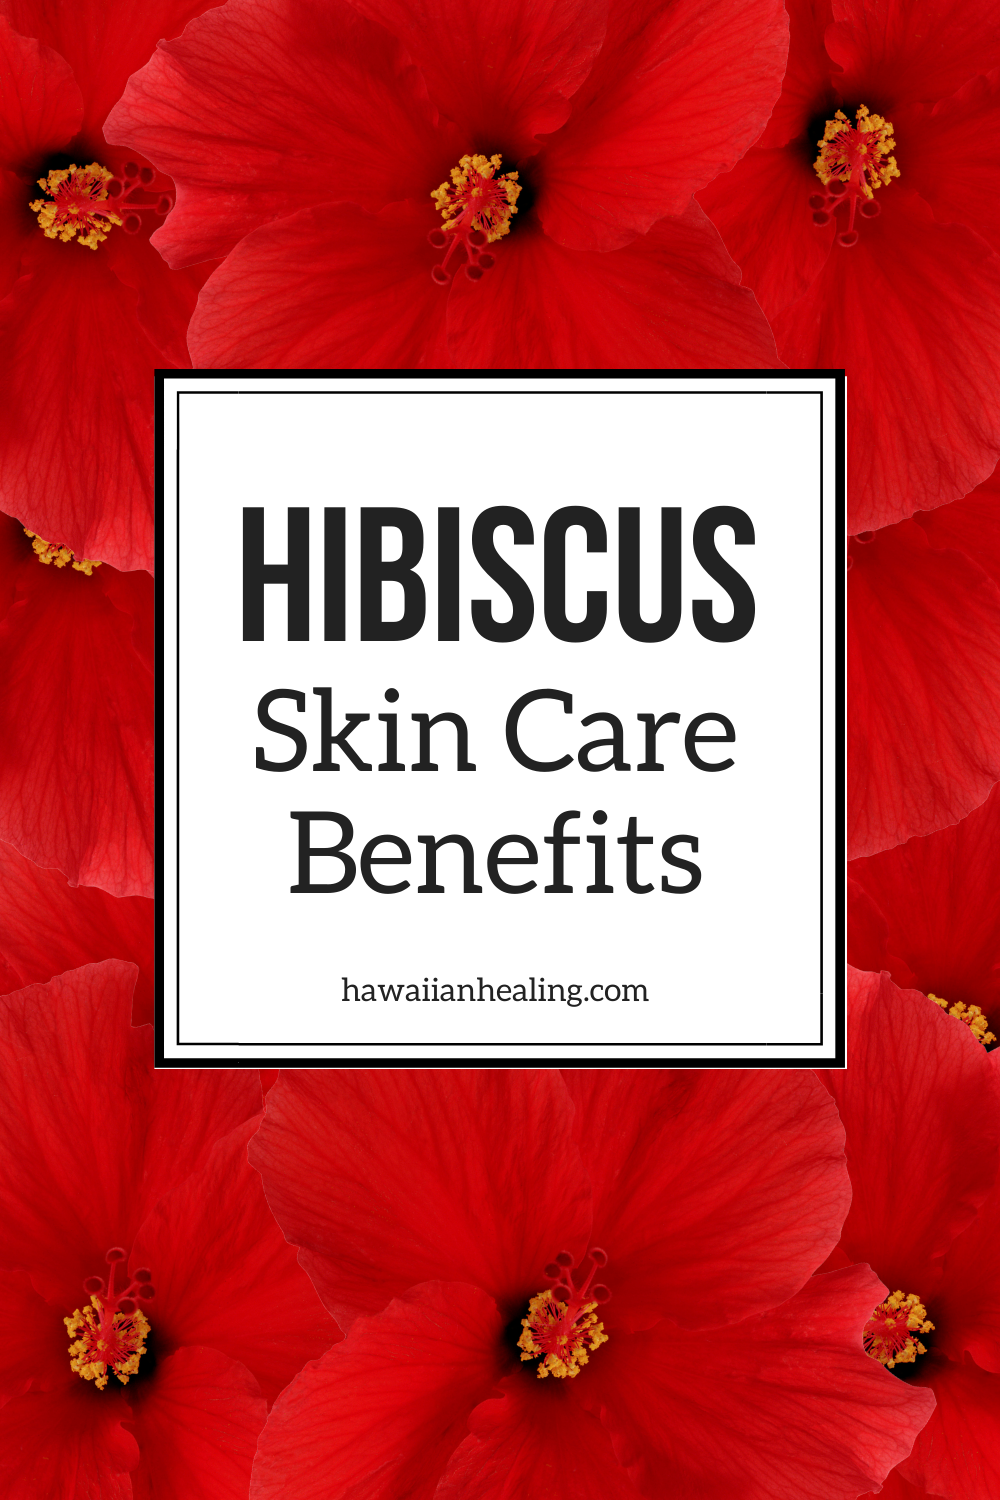 Meet Our Ingredients Organic Hibiscus Flower Extract In 2020 Natural Skin Care Routine Skin Care Benefits Skin Care